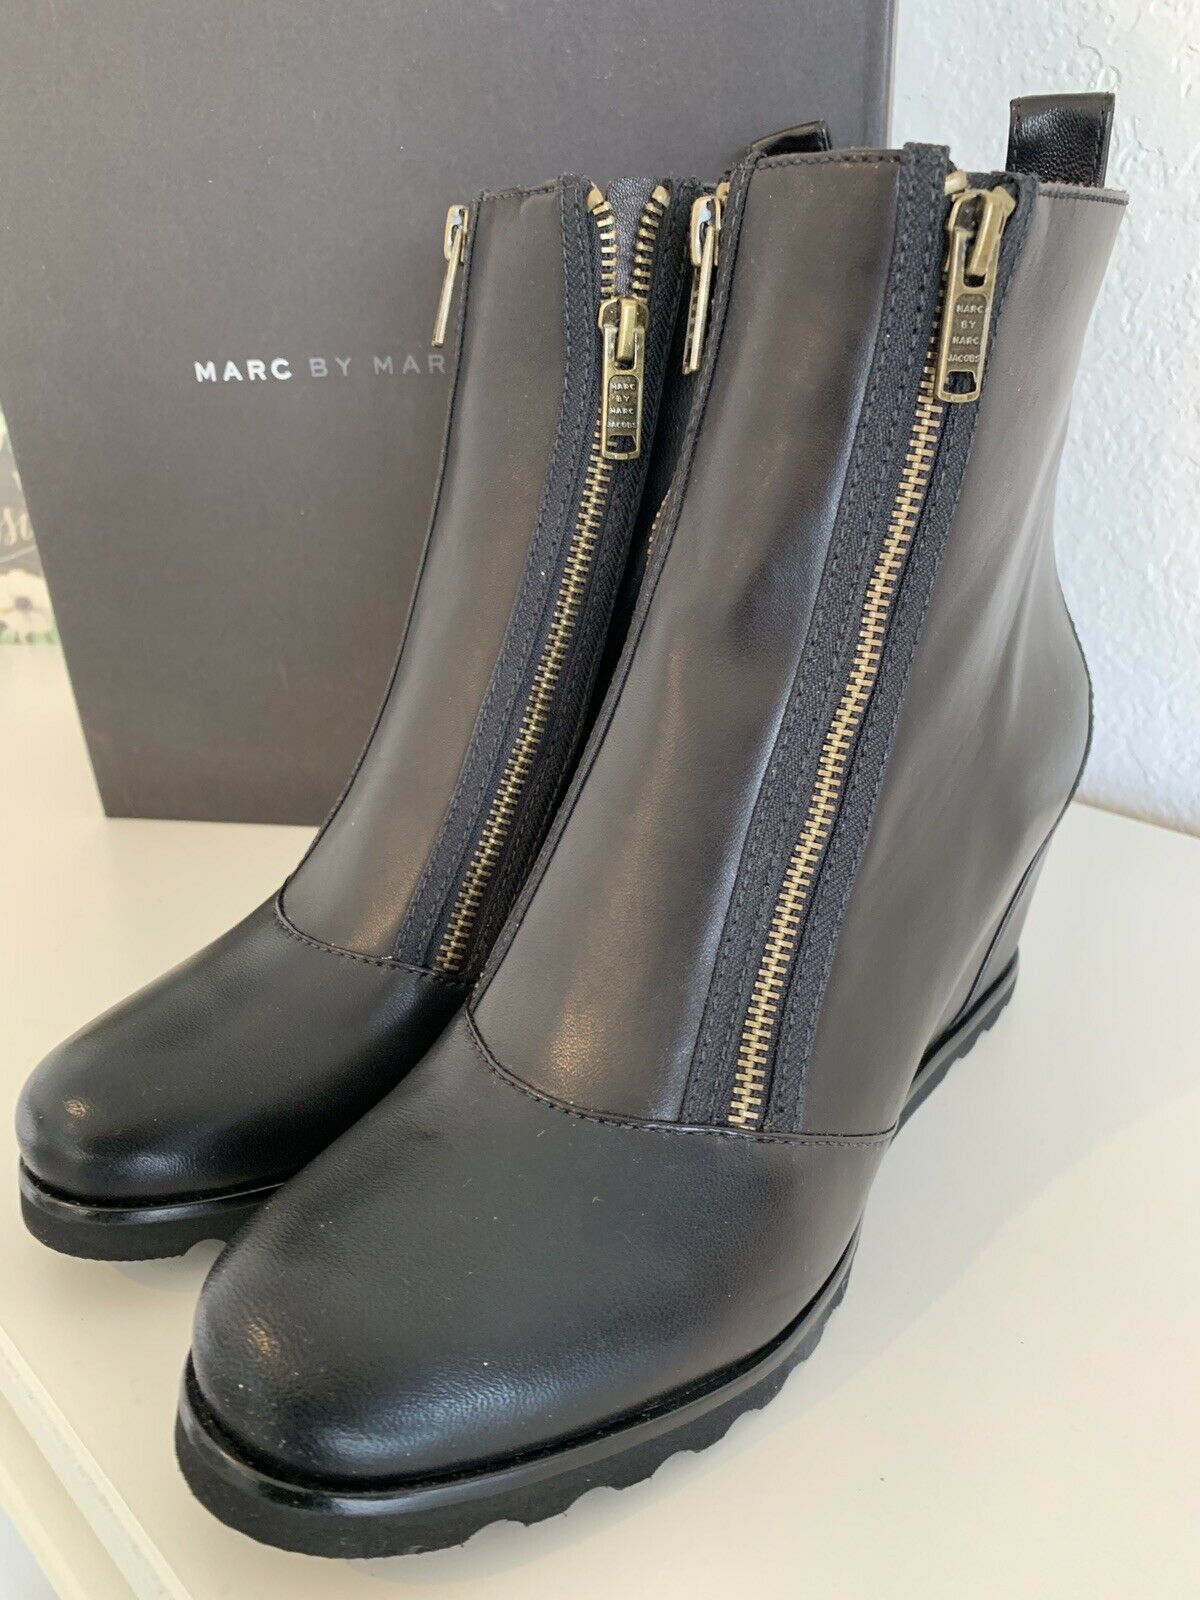 Marc By Marc Jacobs Side Zip Plateform Wedge Ankle Boots As 10.5